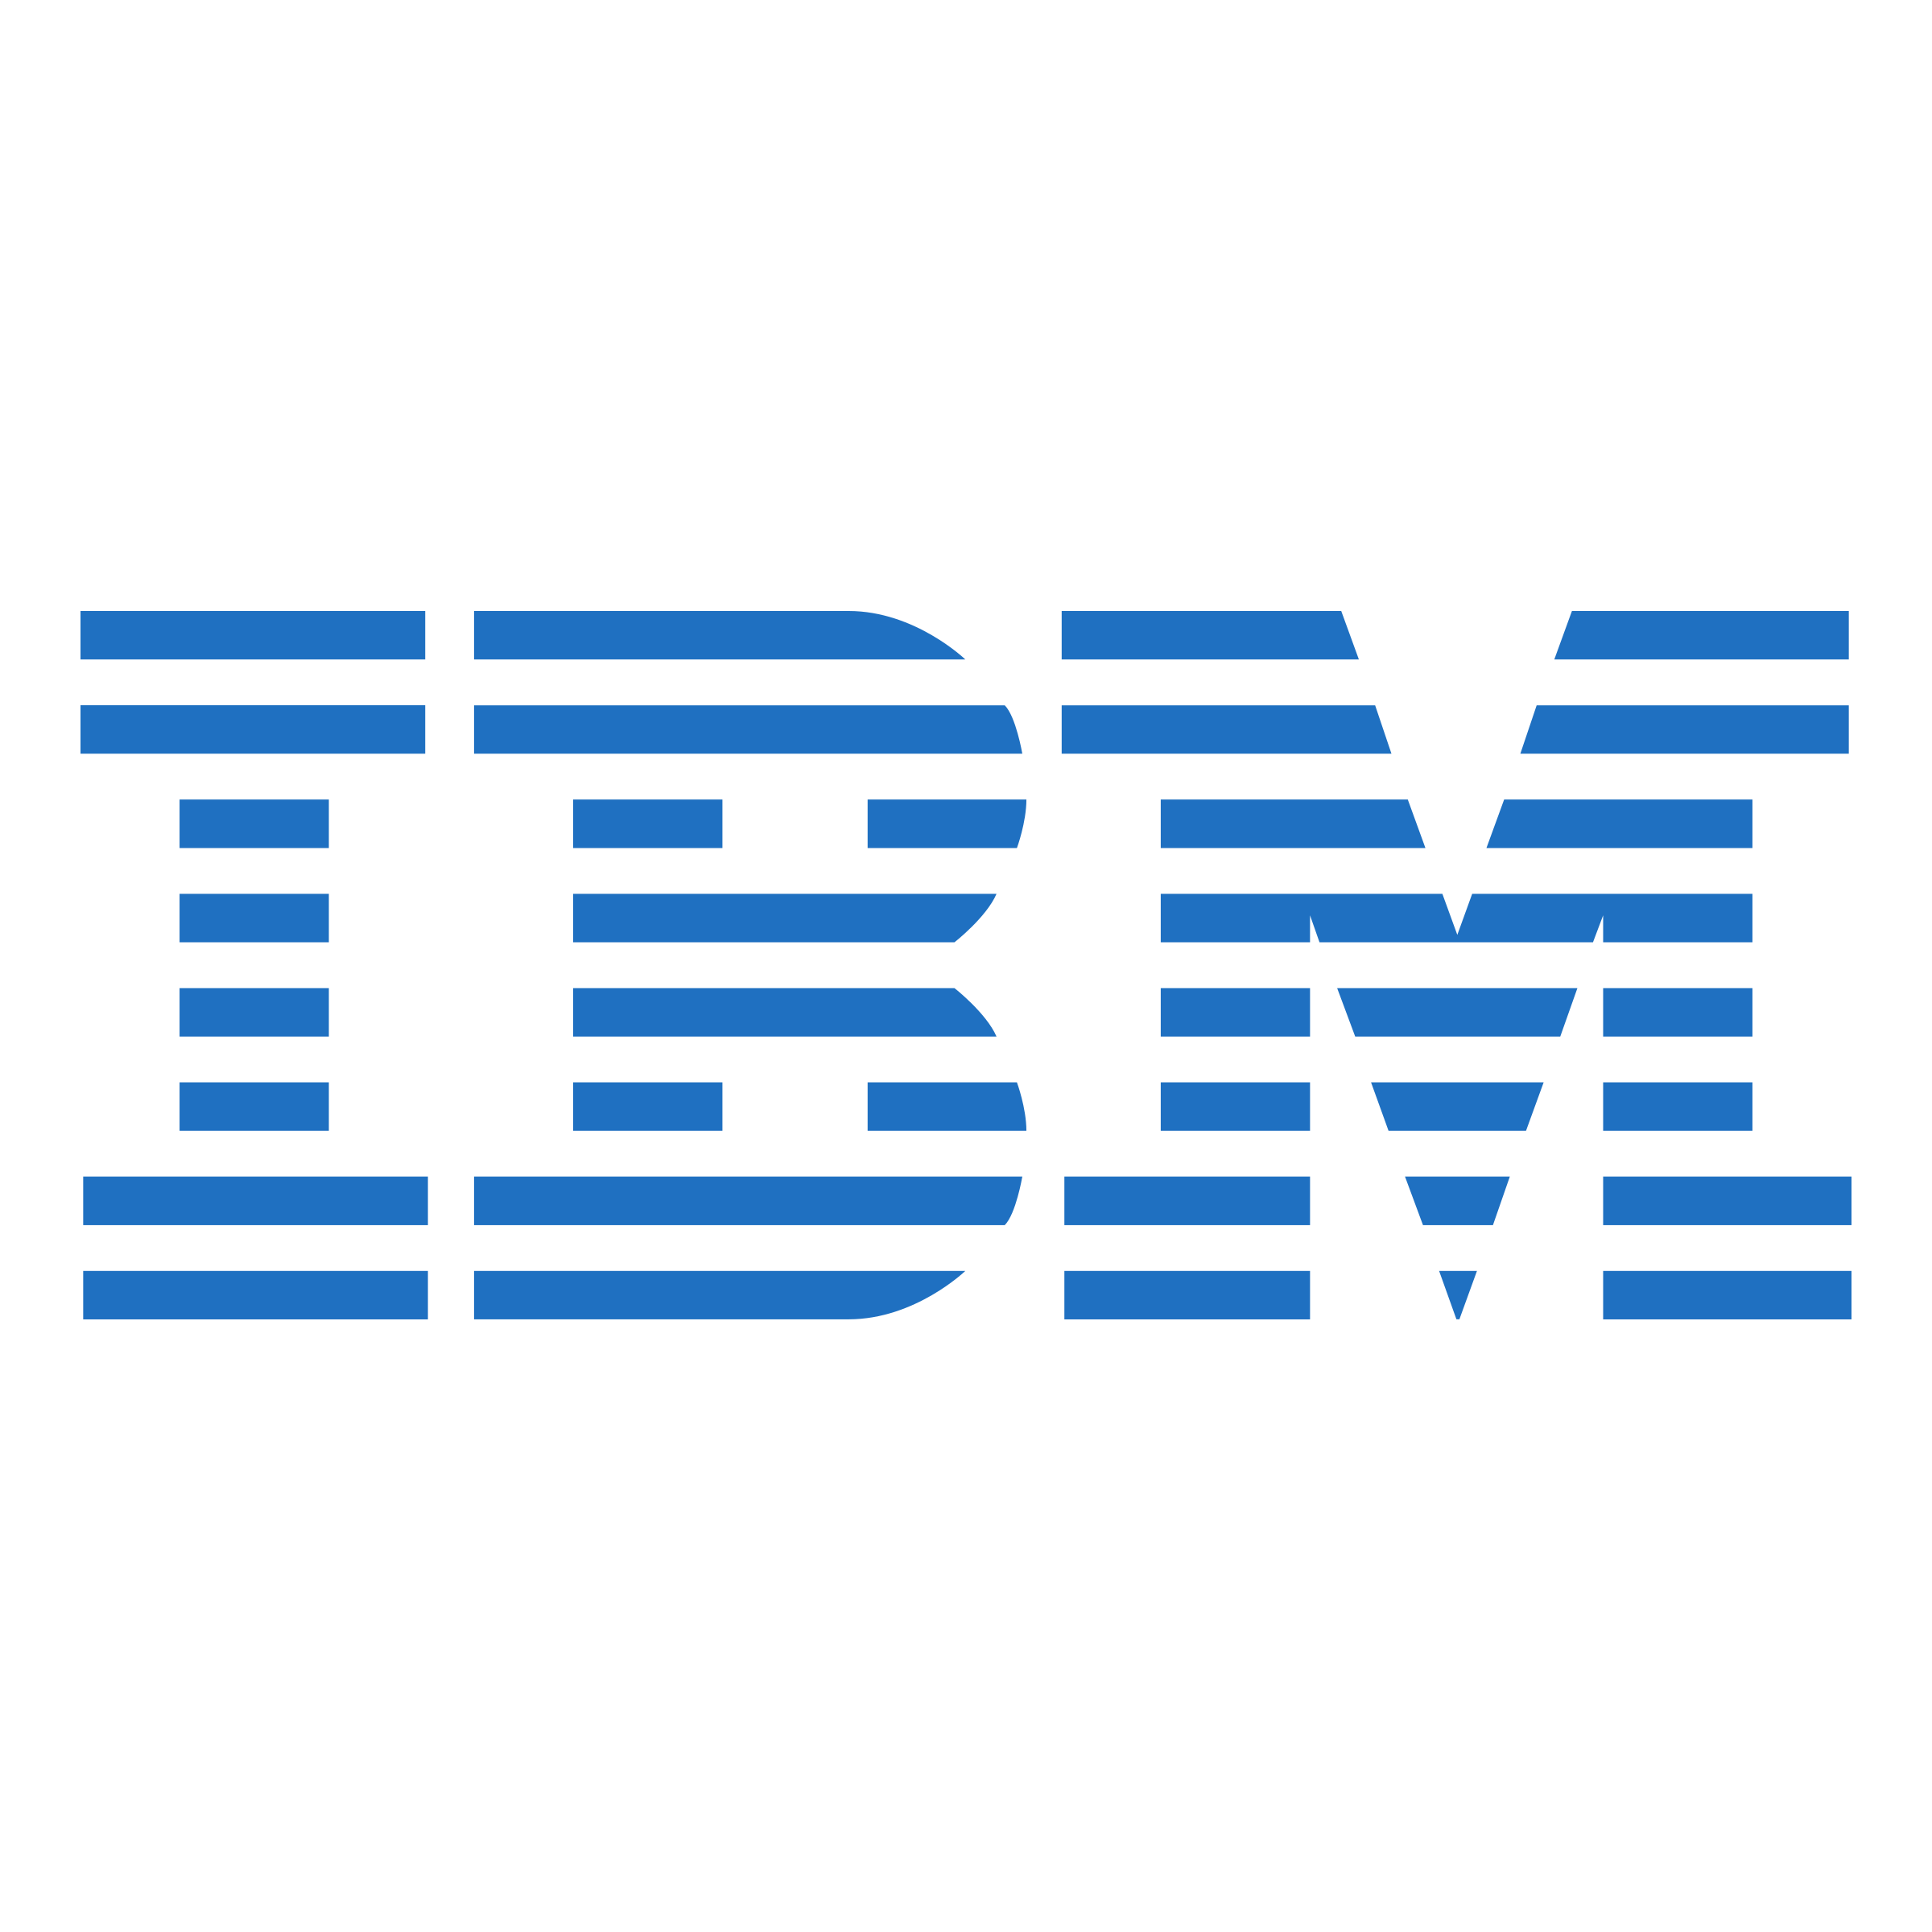 ibm-logo-transparent